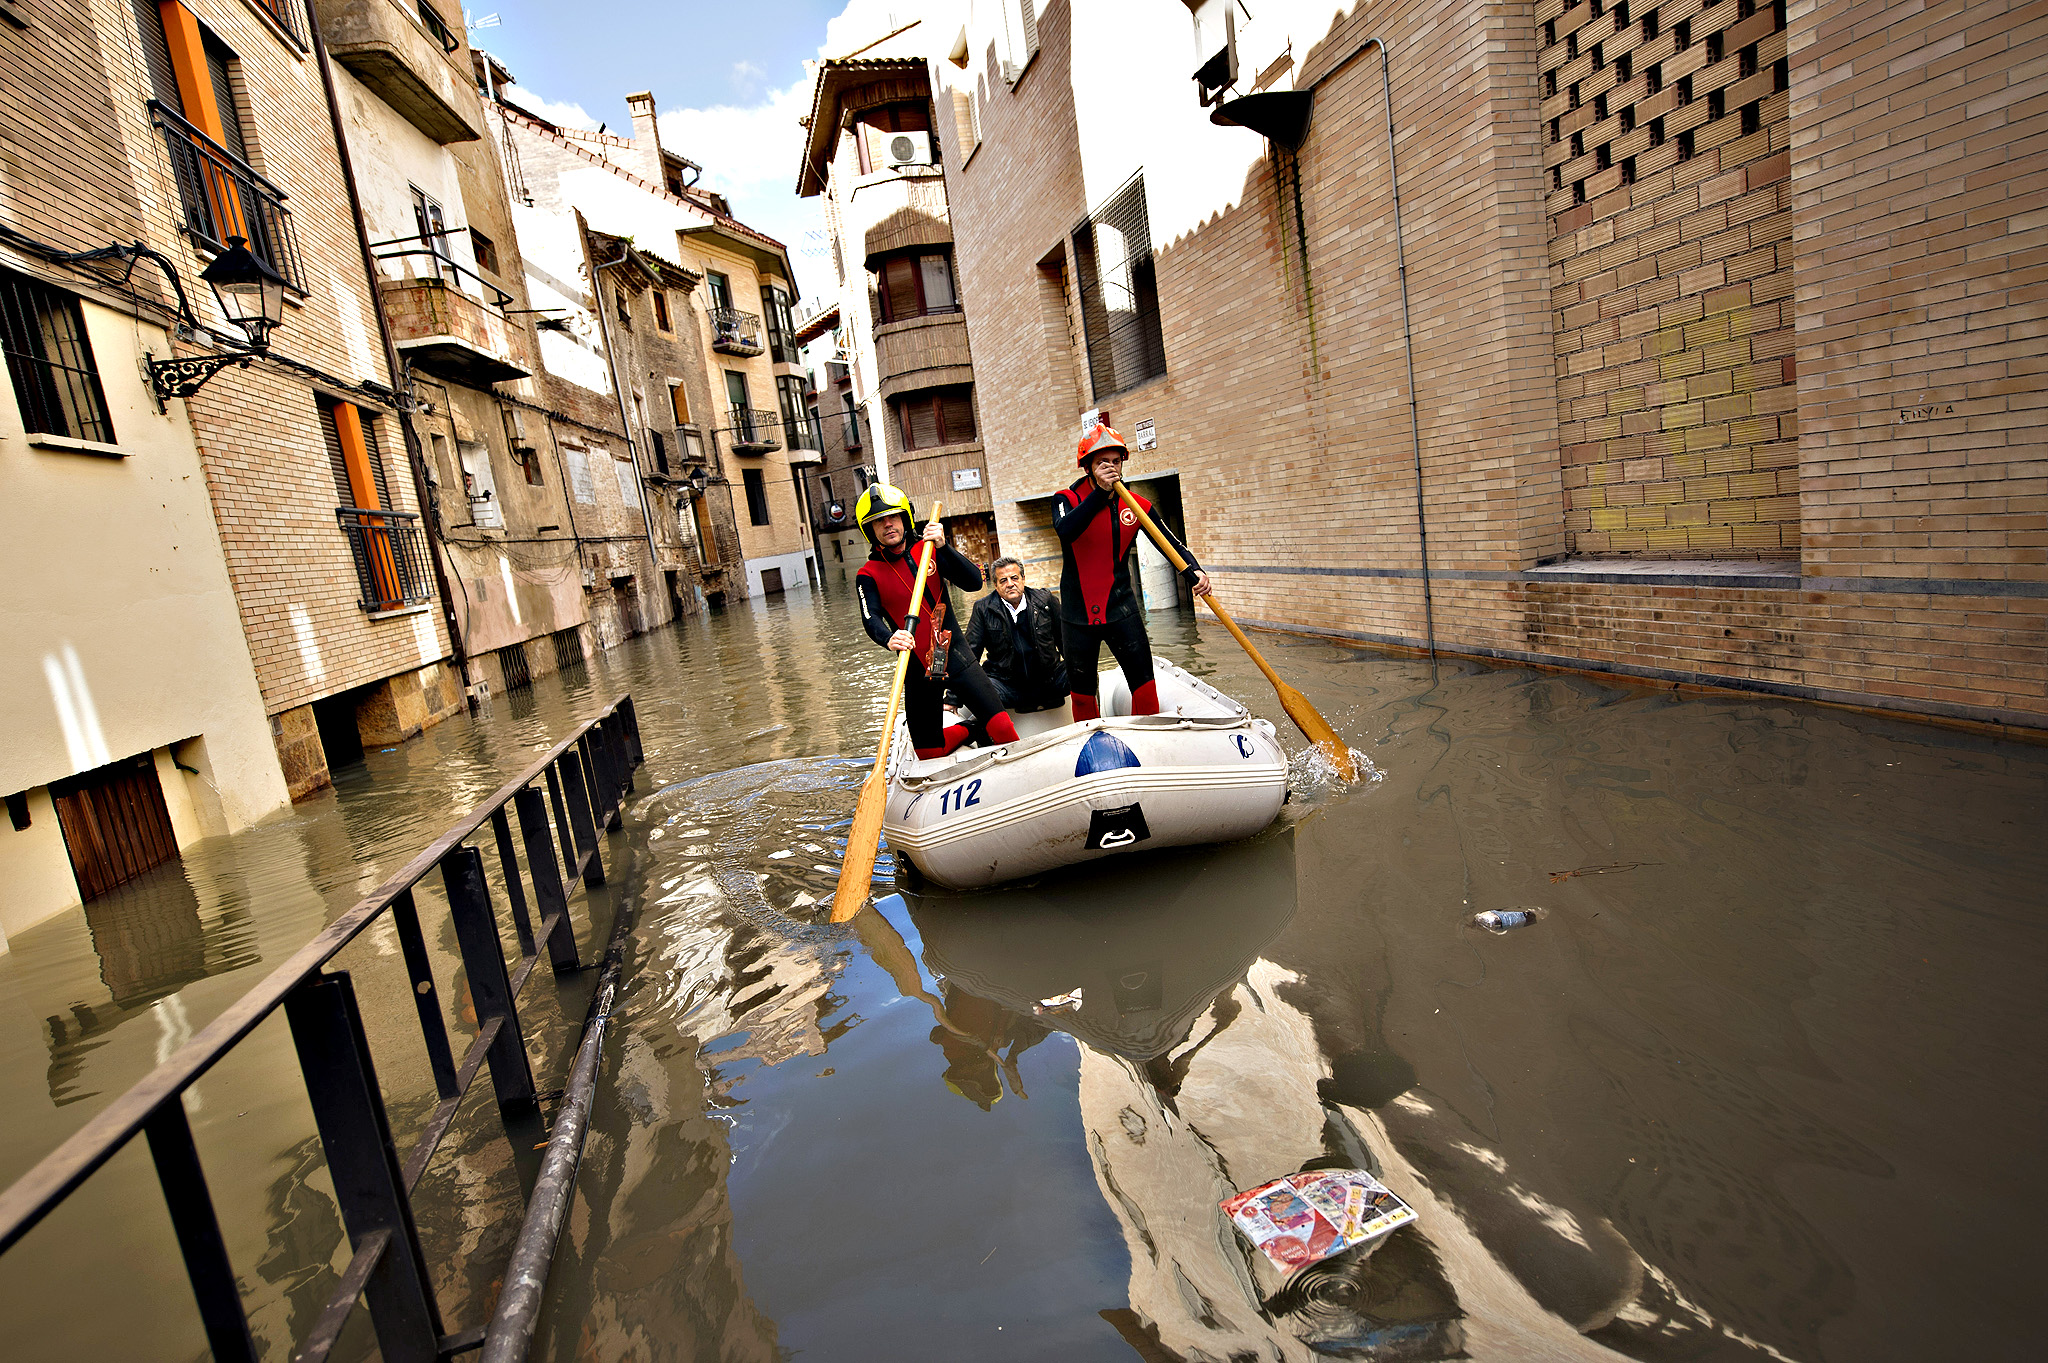 A man is rescued by rescue team as the water covered the old city, in Tudela, northern Spain, Friday, Feb. 27, 2015. Heavy rain has lead to flooding in northern Spain over the past few days, especially in Navarra province.